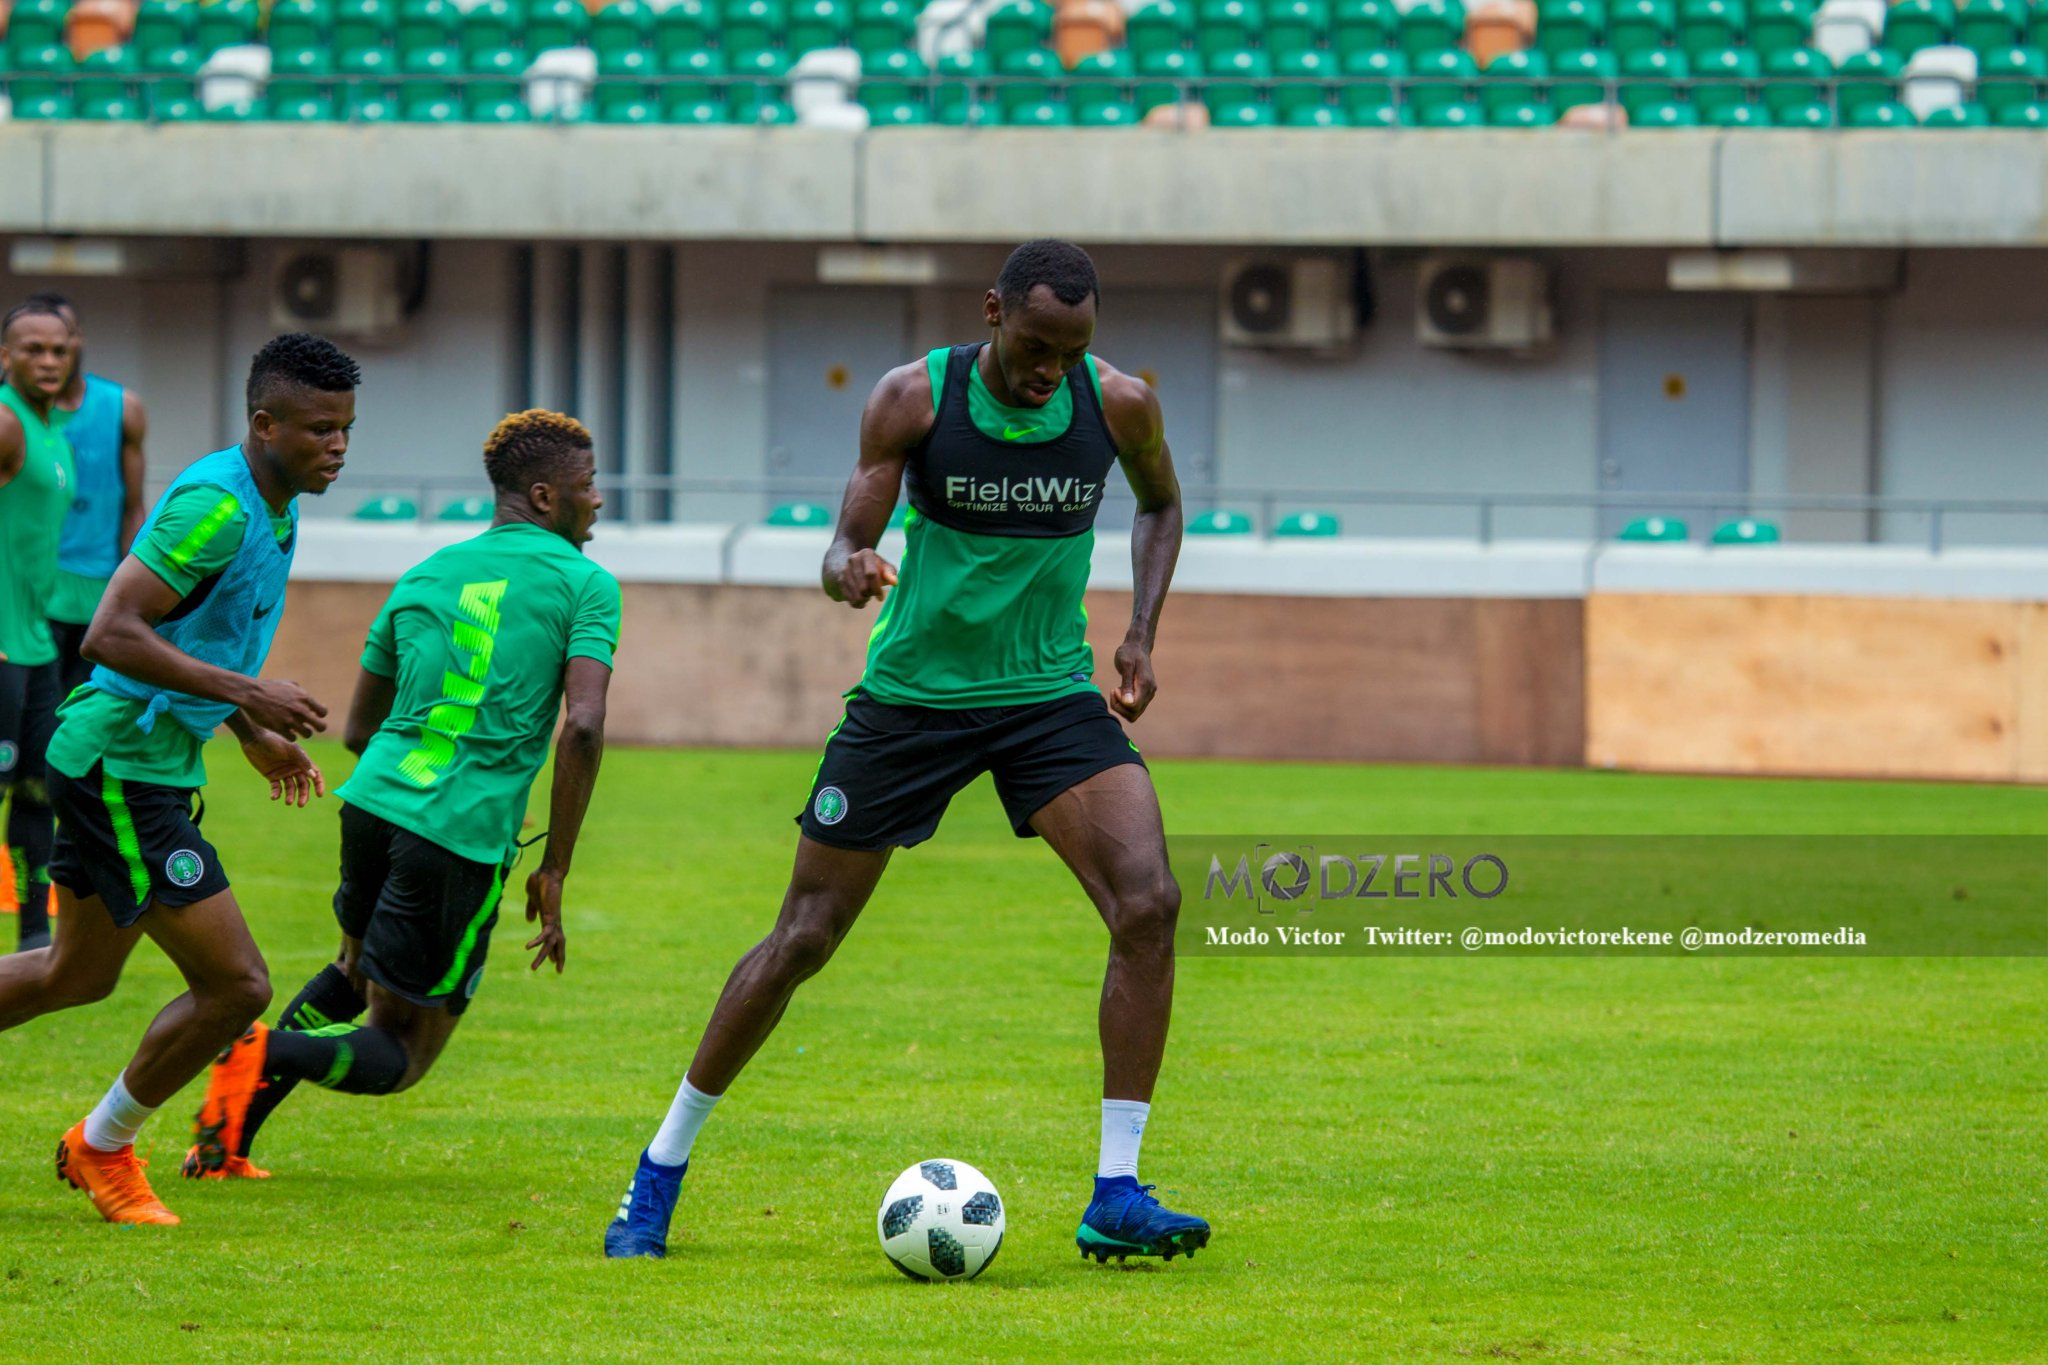 Rohr awaits confirmation injury will rule out Moses Simon from World Cup